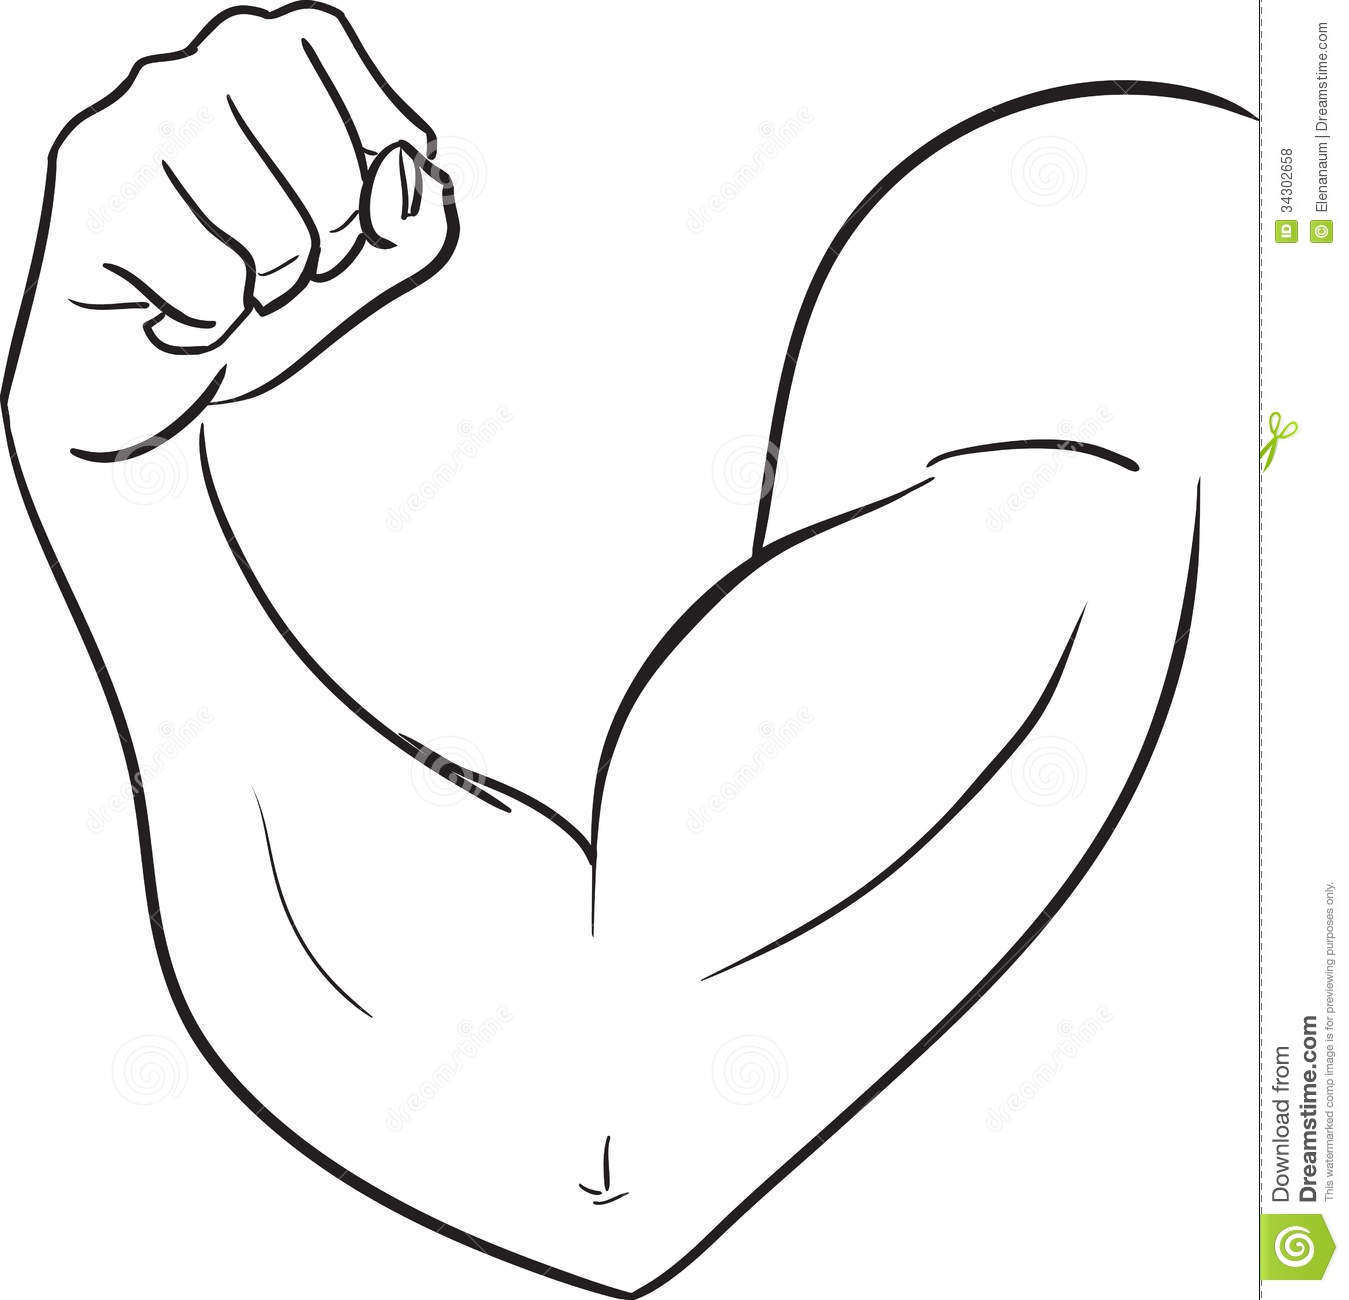 1349x1300 Clipart Muscle Arm